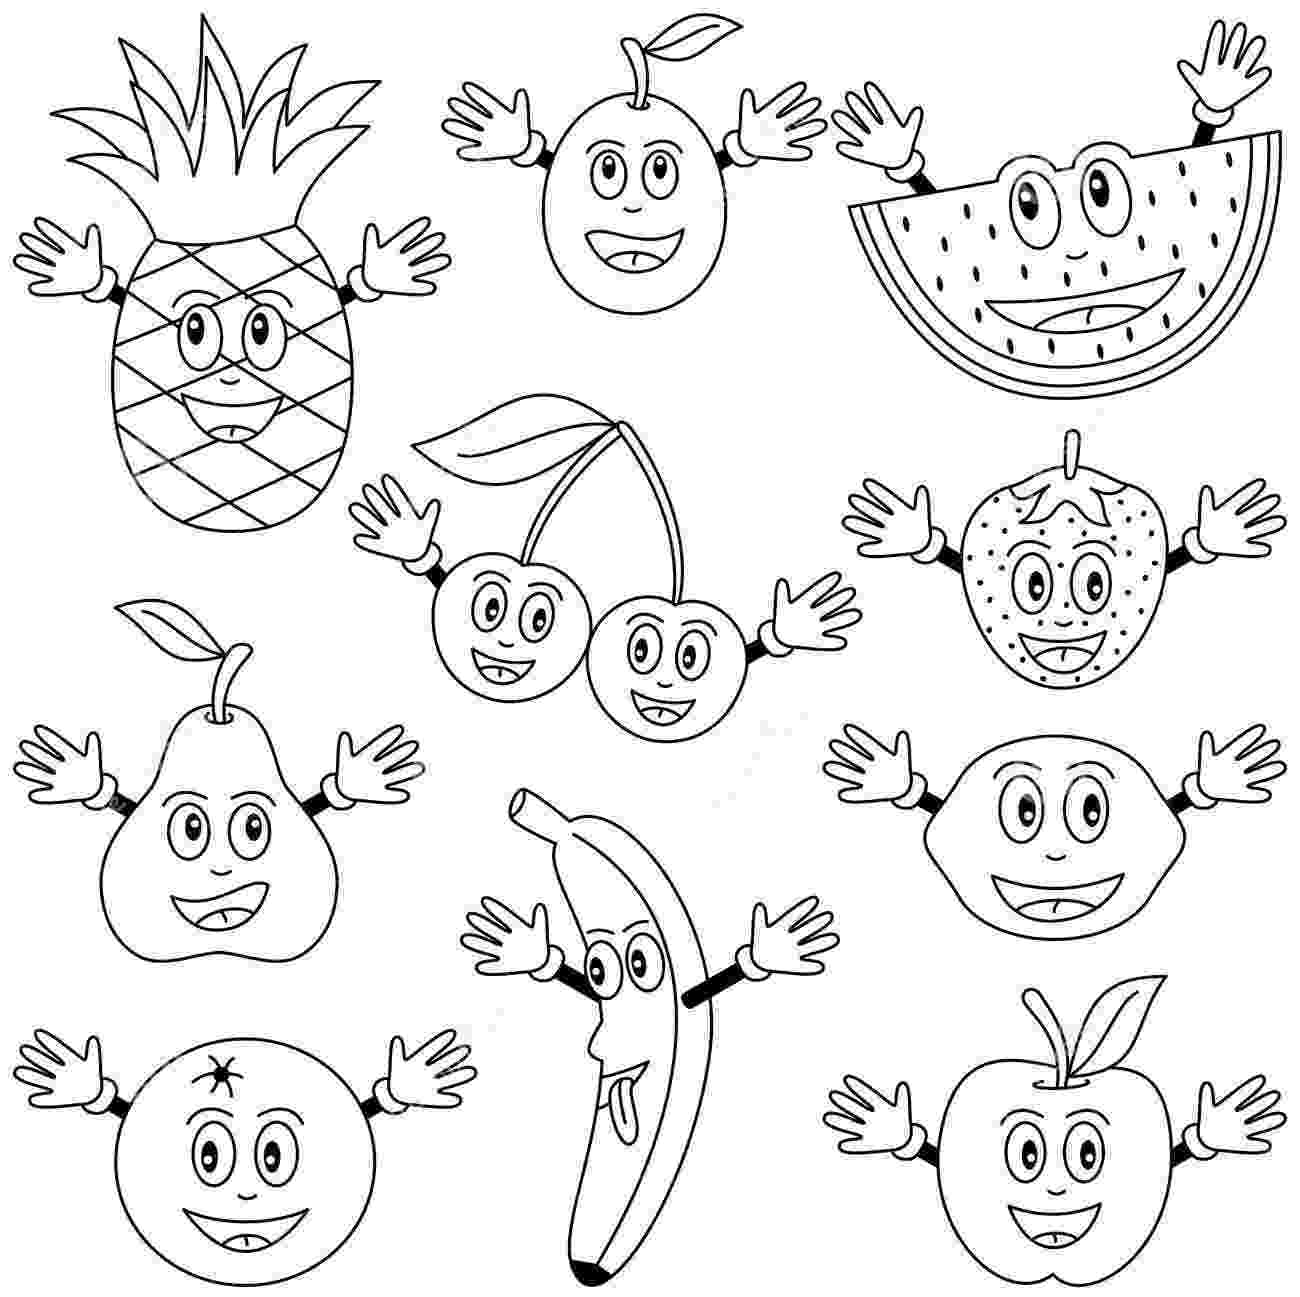 fruit images to color fruit coloring pages getcoloringpagescom images fruit color to